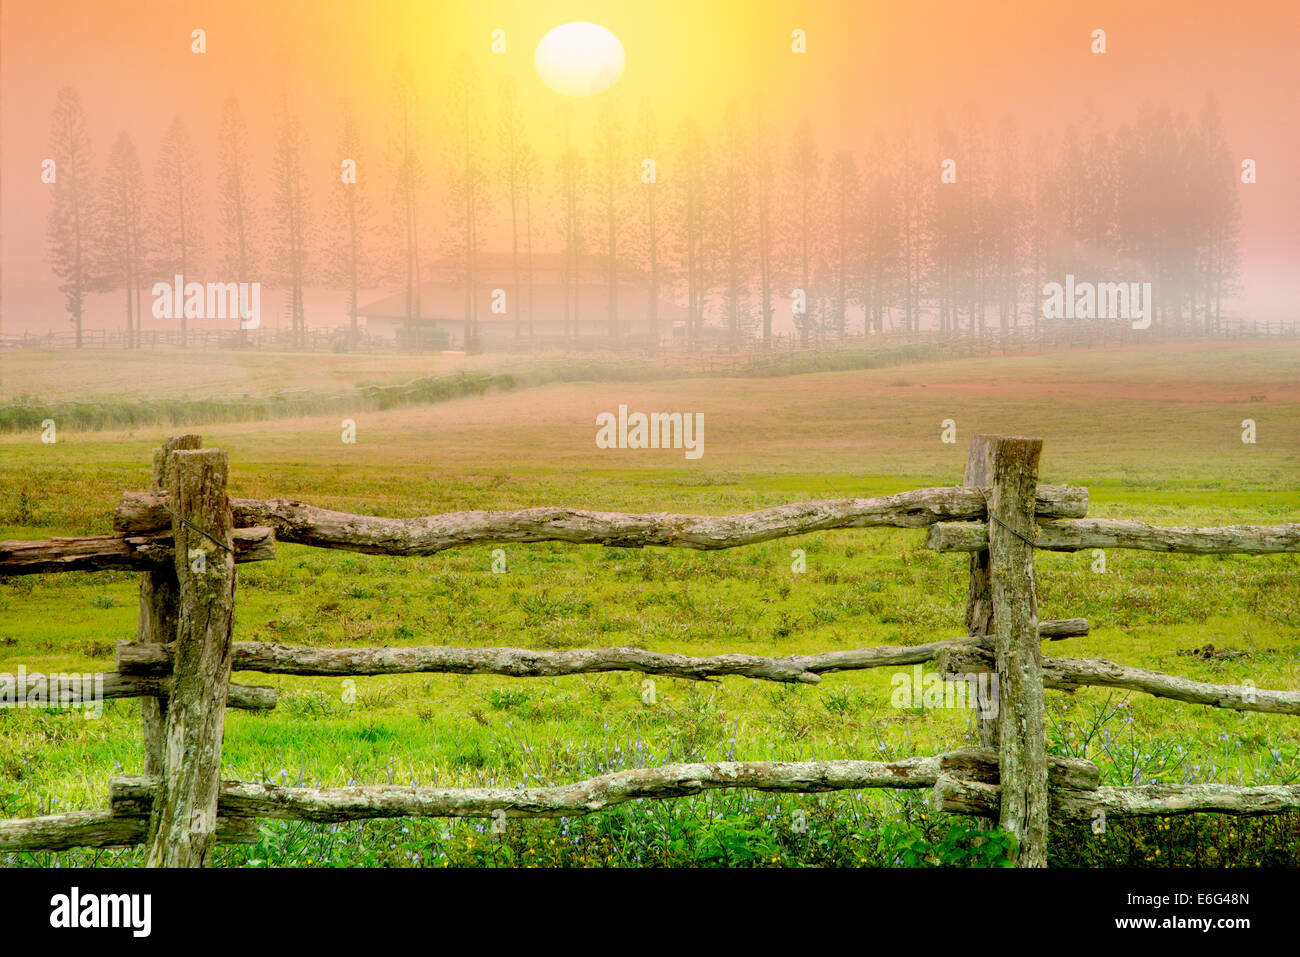 Fence, pasture and Cook Pines in fog with barn, Stables at Ko'ele. Lanai, Hawaii - Stock Image